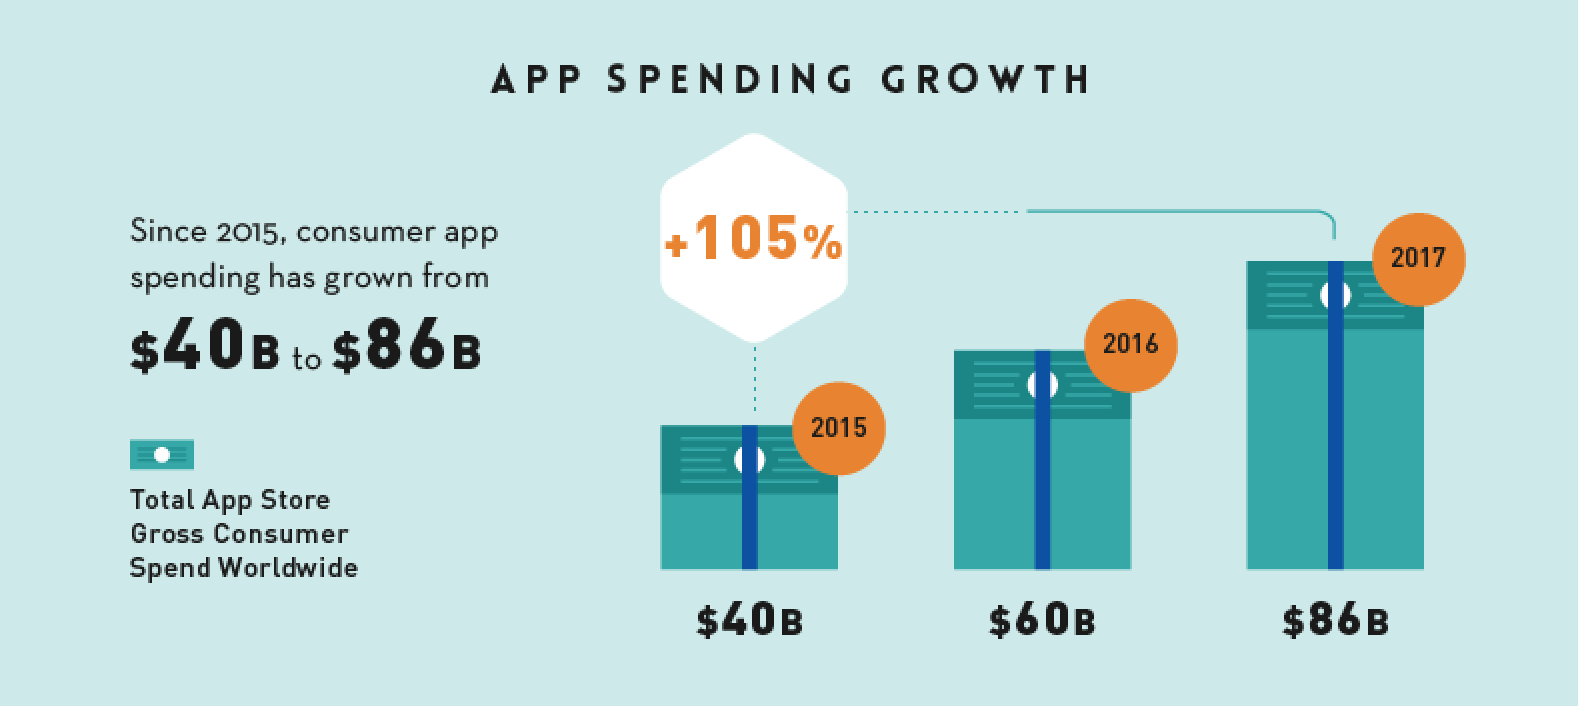 app spending growth